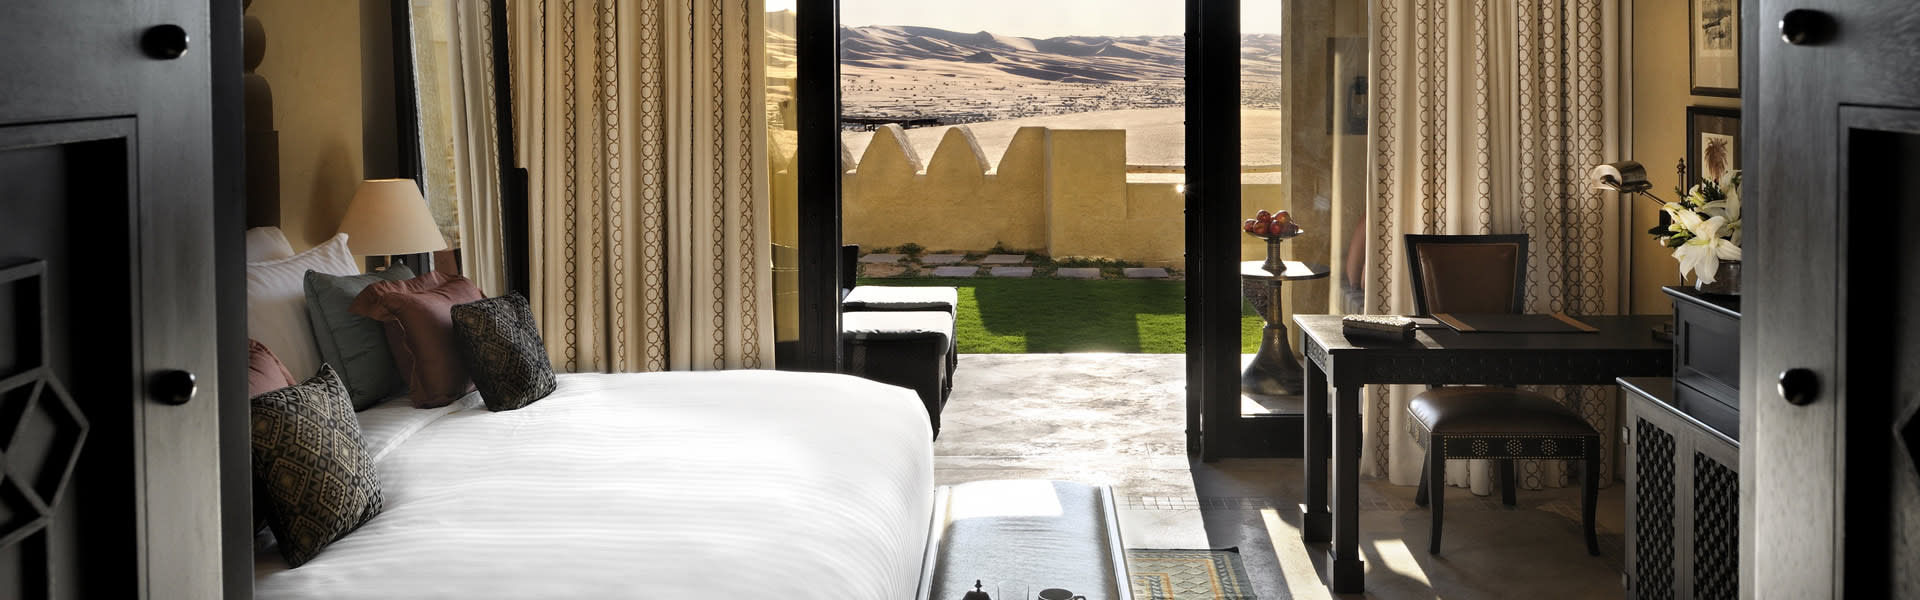 Corpus Rub Abu Dhabi 5 Star Hotels Deluxe Garden Rooms At Qasr Al Sarab